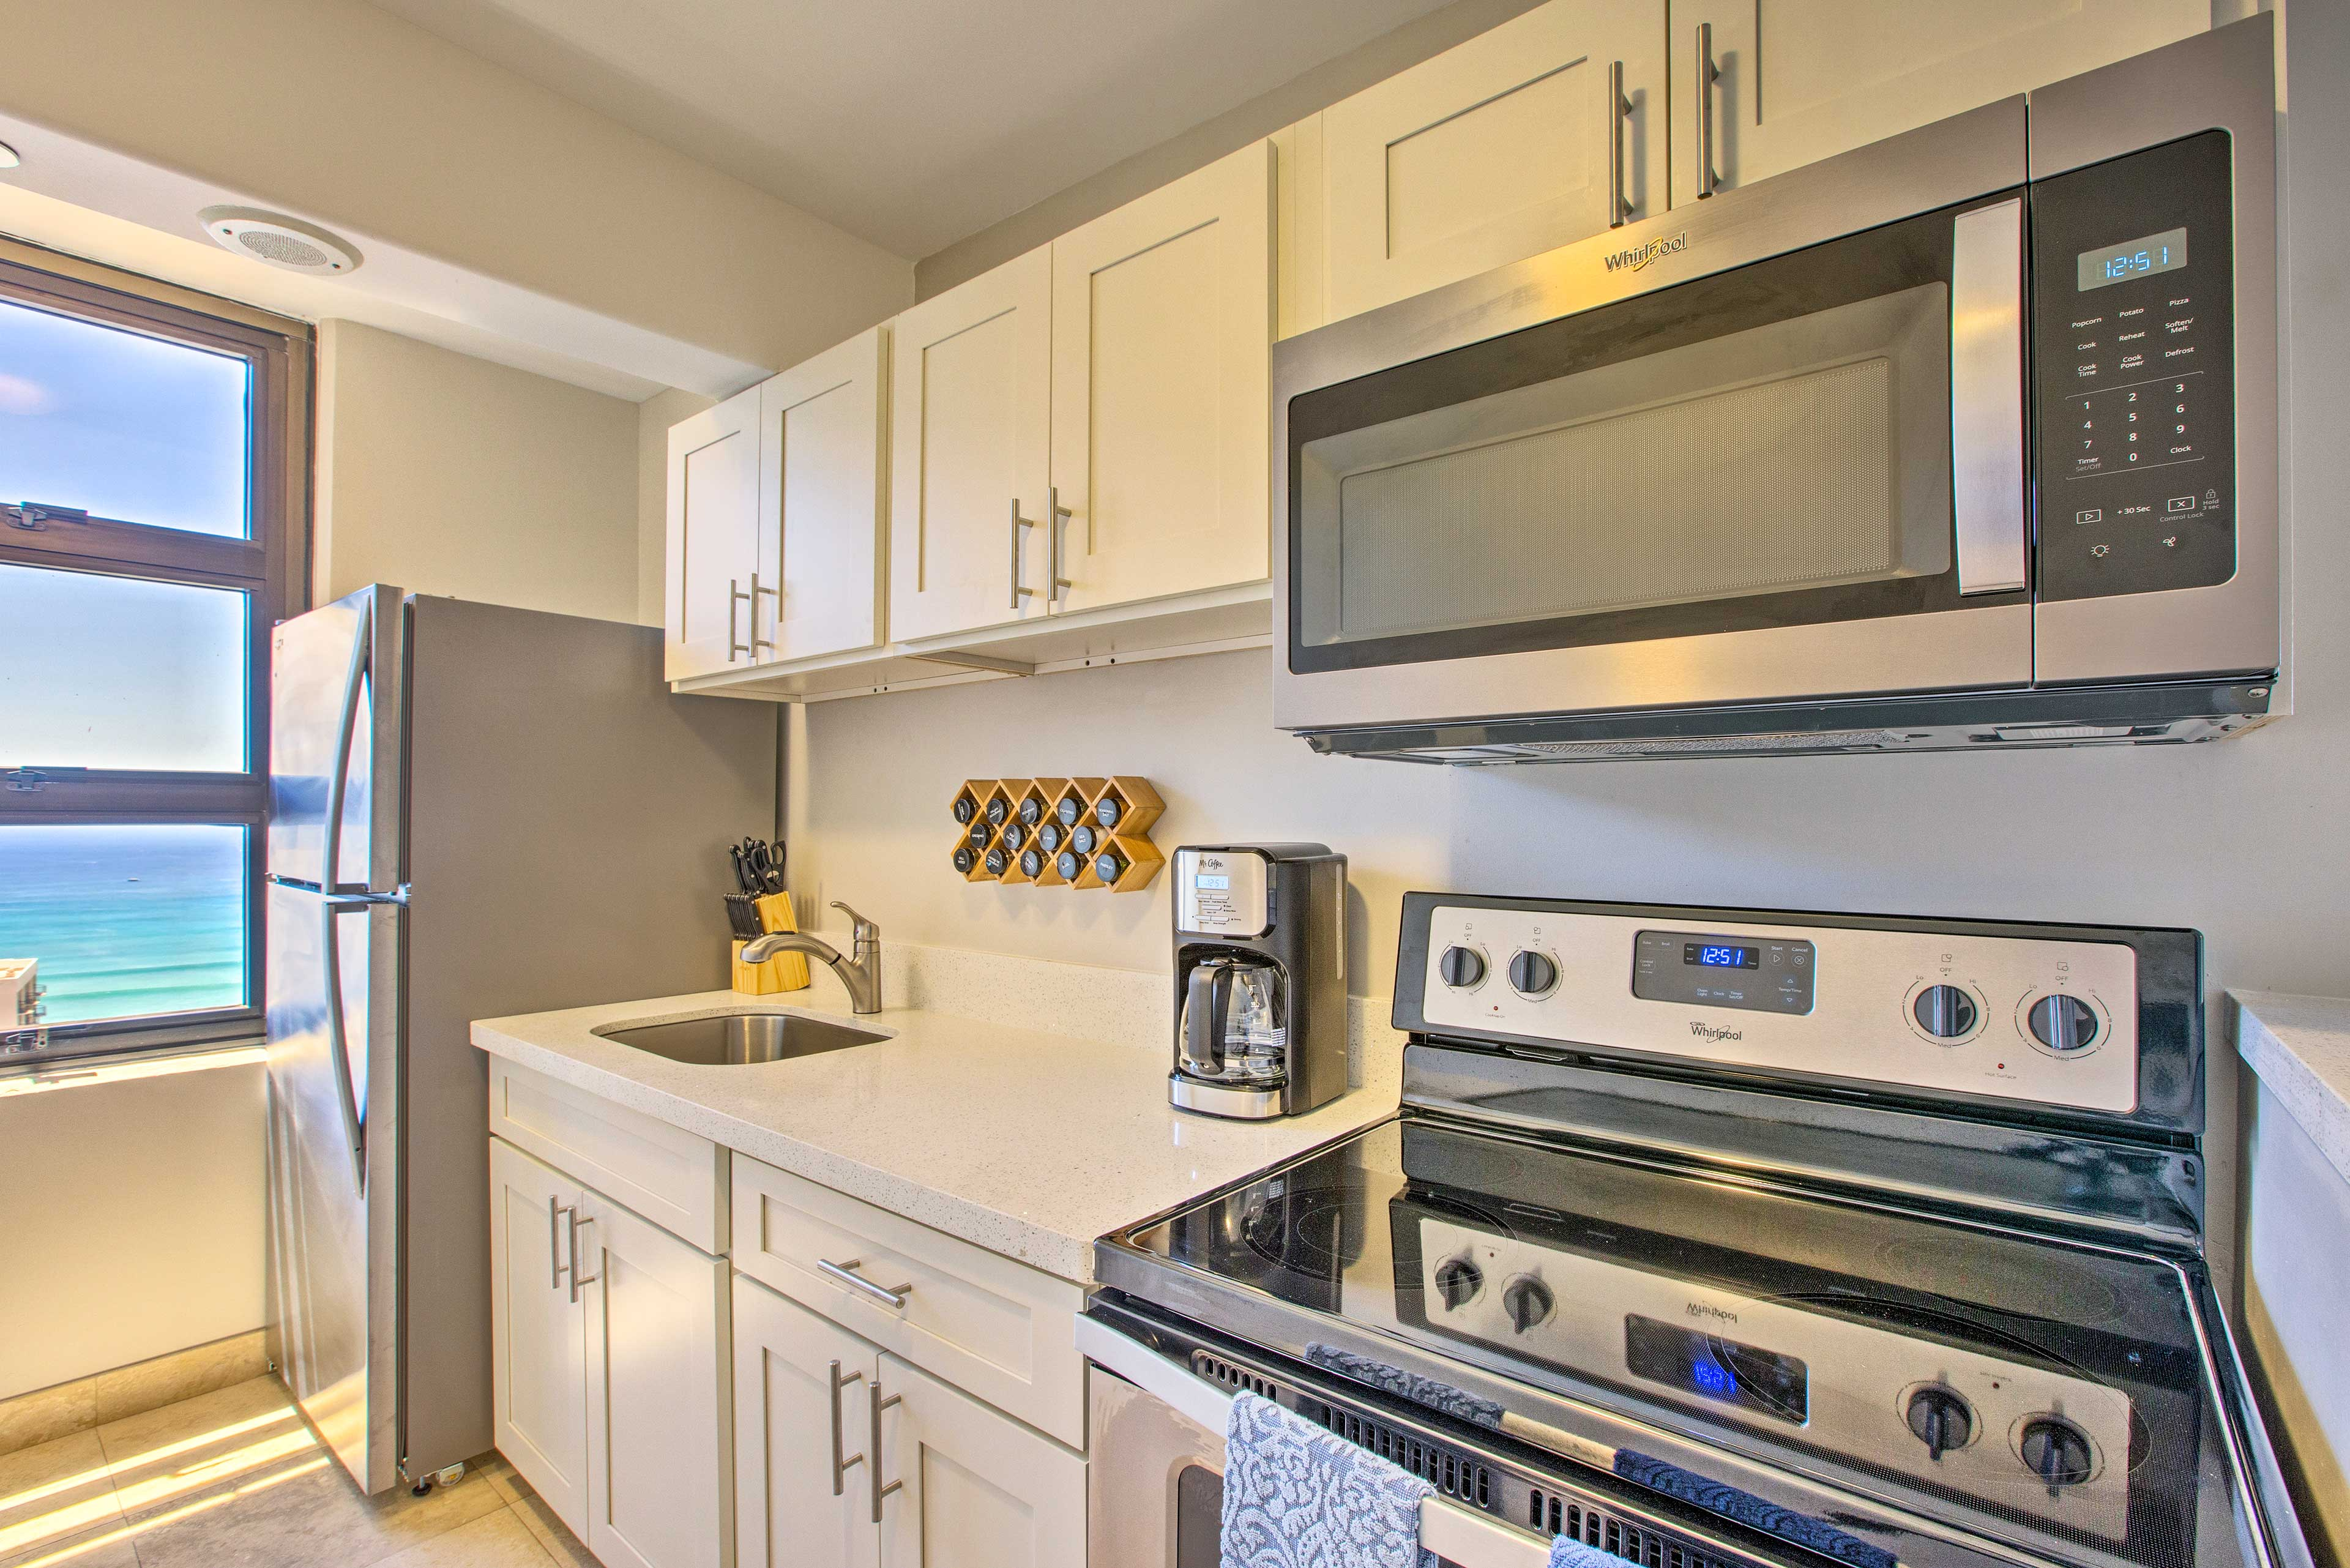 Cooking is easy as pie in this well-equipped kitchen.